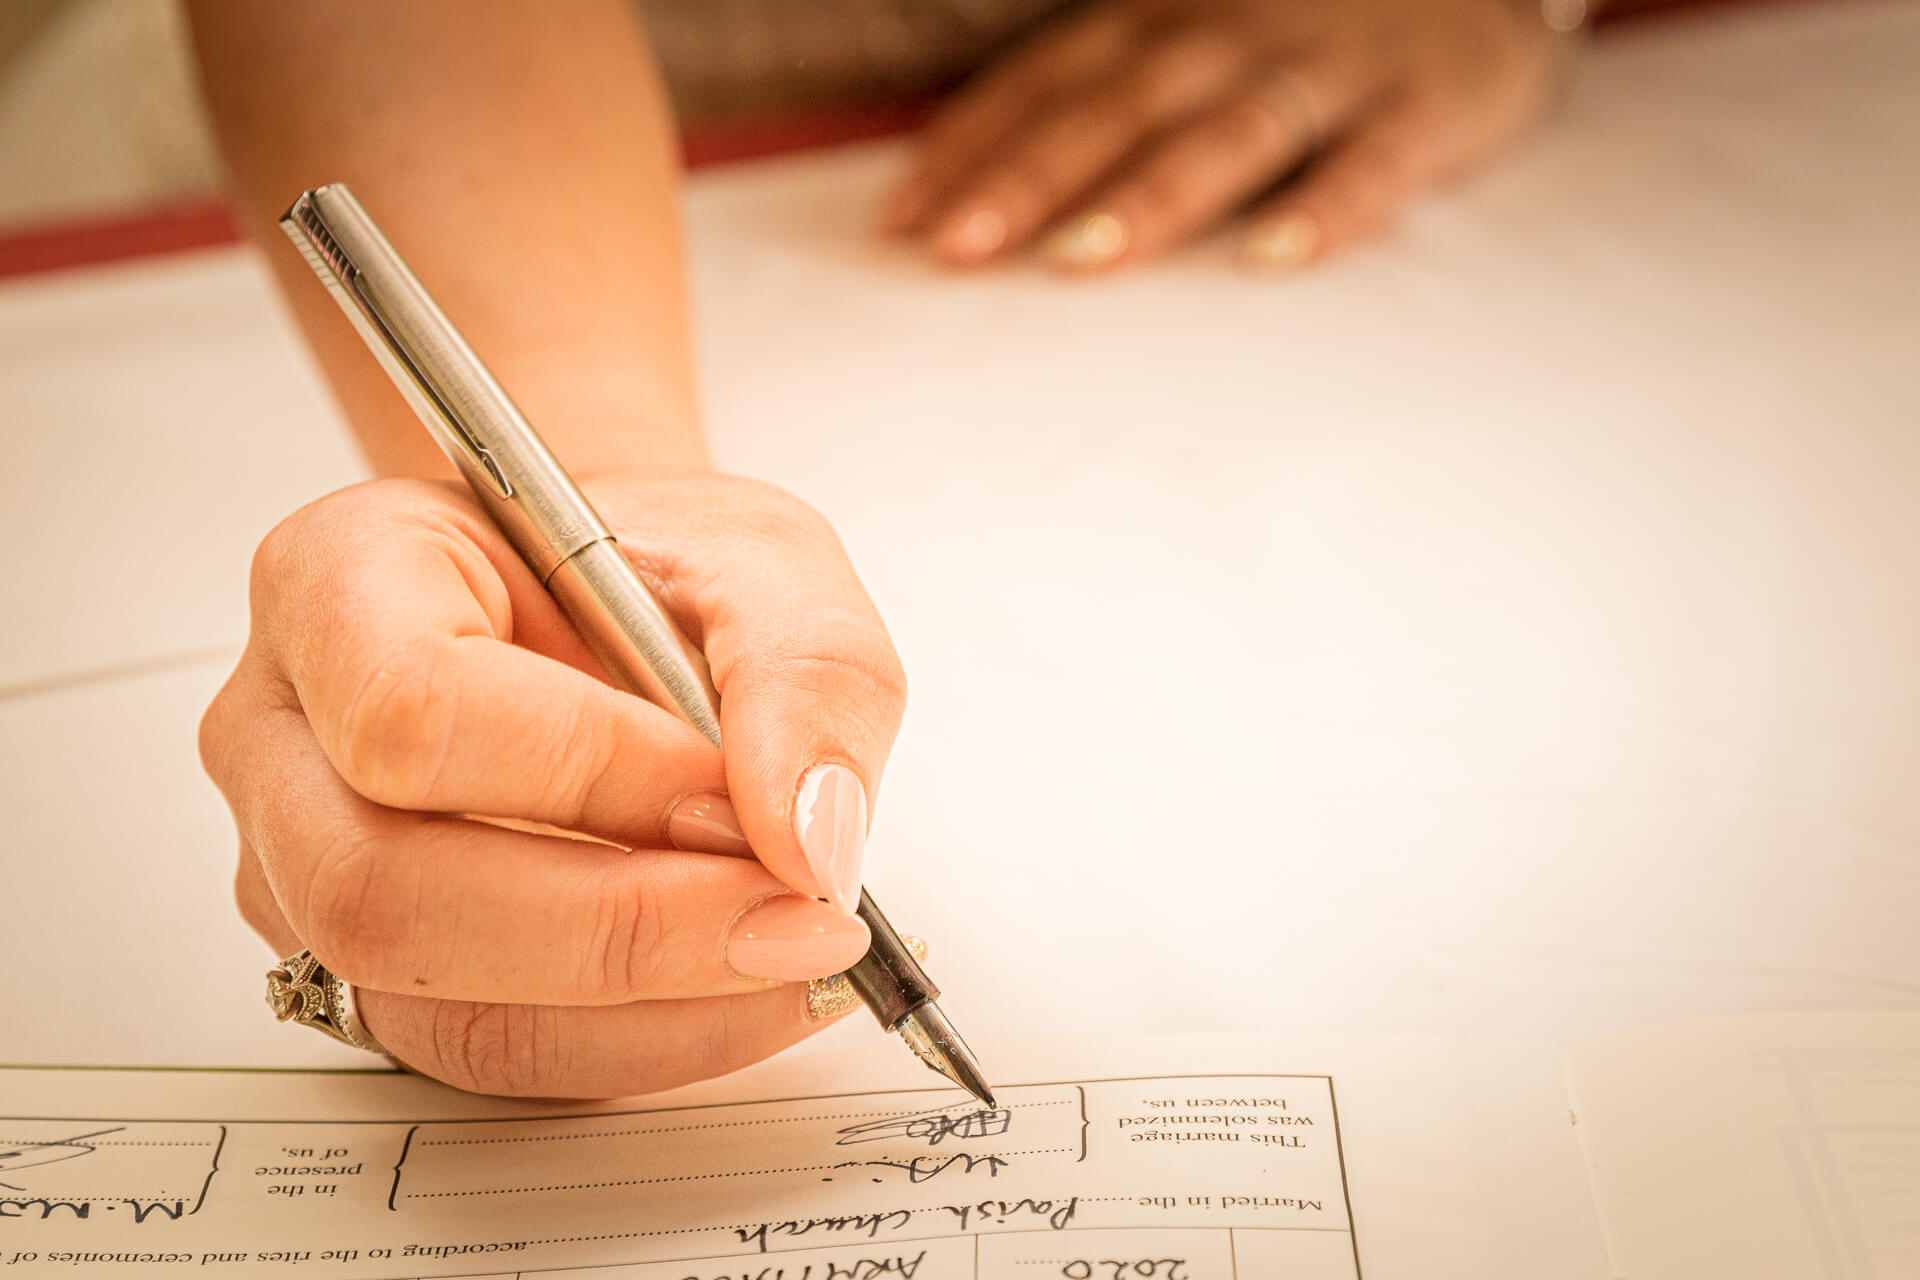 A close-up shot of the hand of the Bride holding an ink pen as she signs the marriage register.